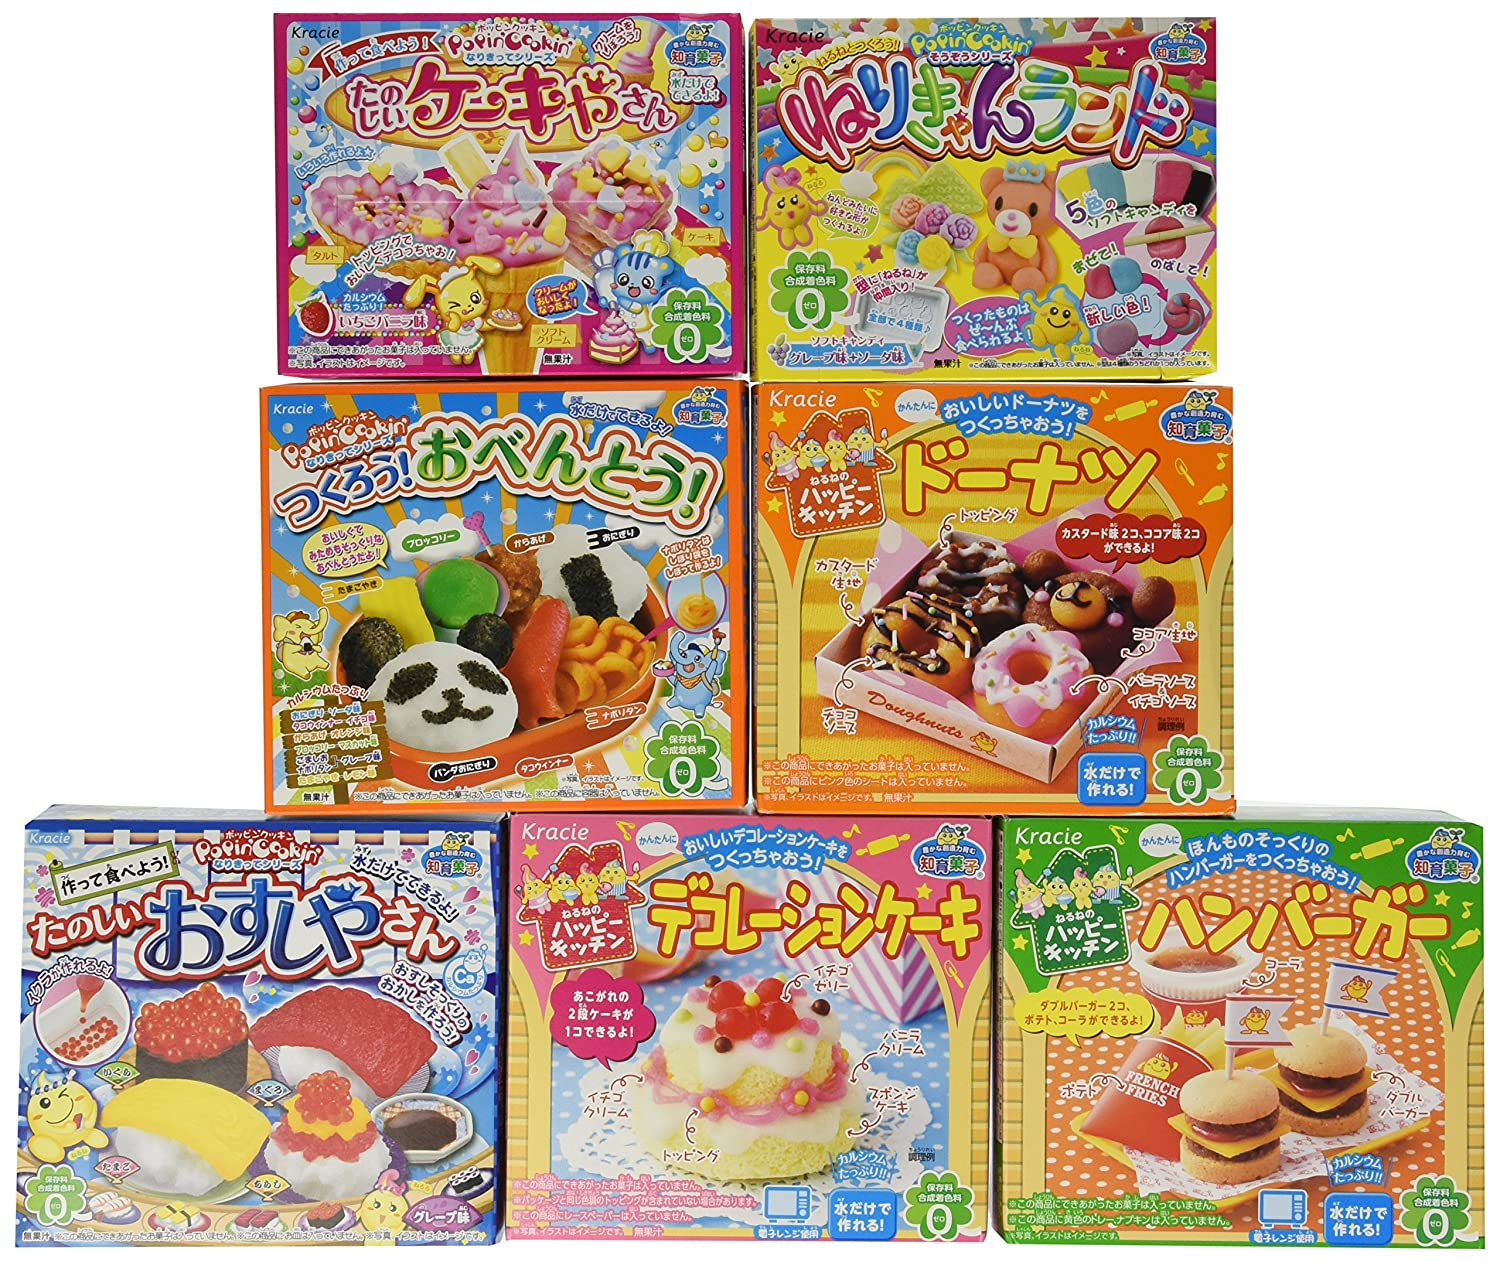 Popin cookin amazon - Amazon Com Hamburger Popin Cookin Kit Diy Candy By Kracie X 7 Different Styles Grocery Gourmet Food